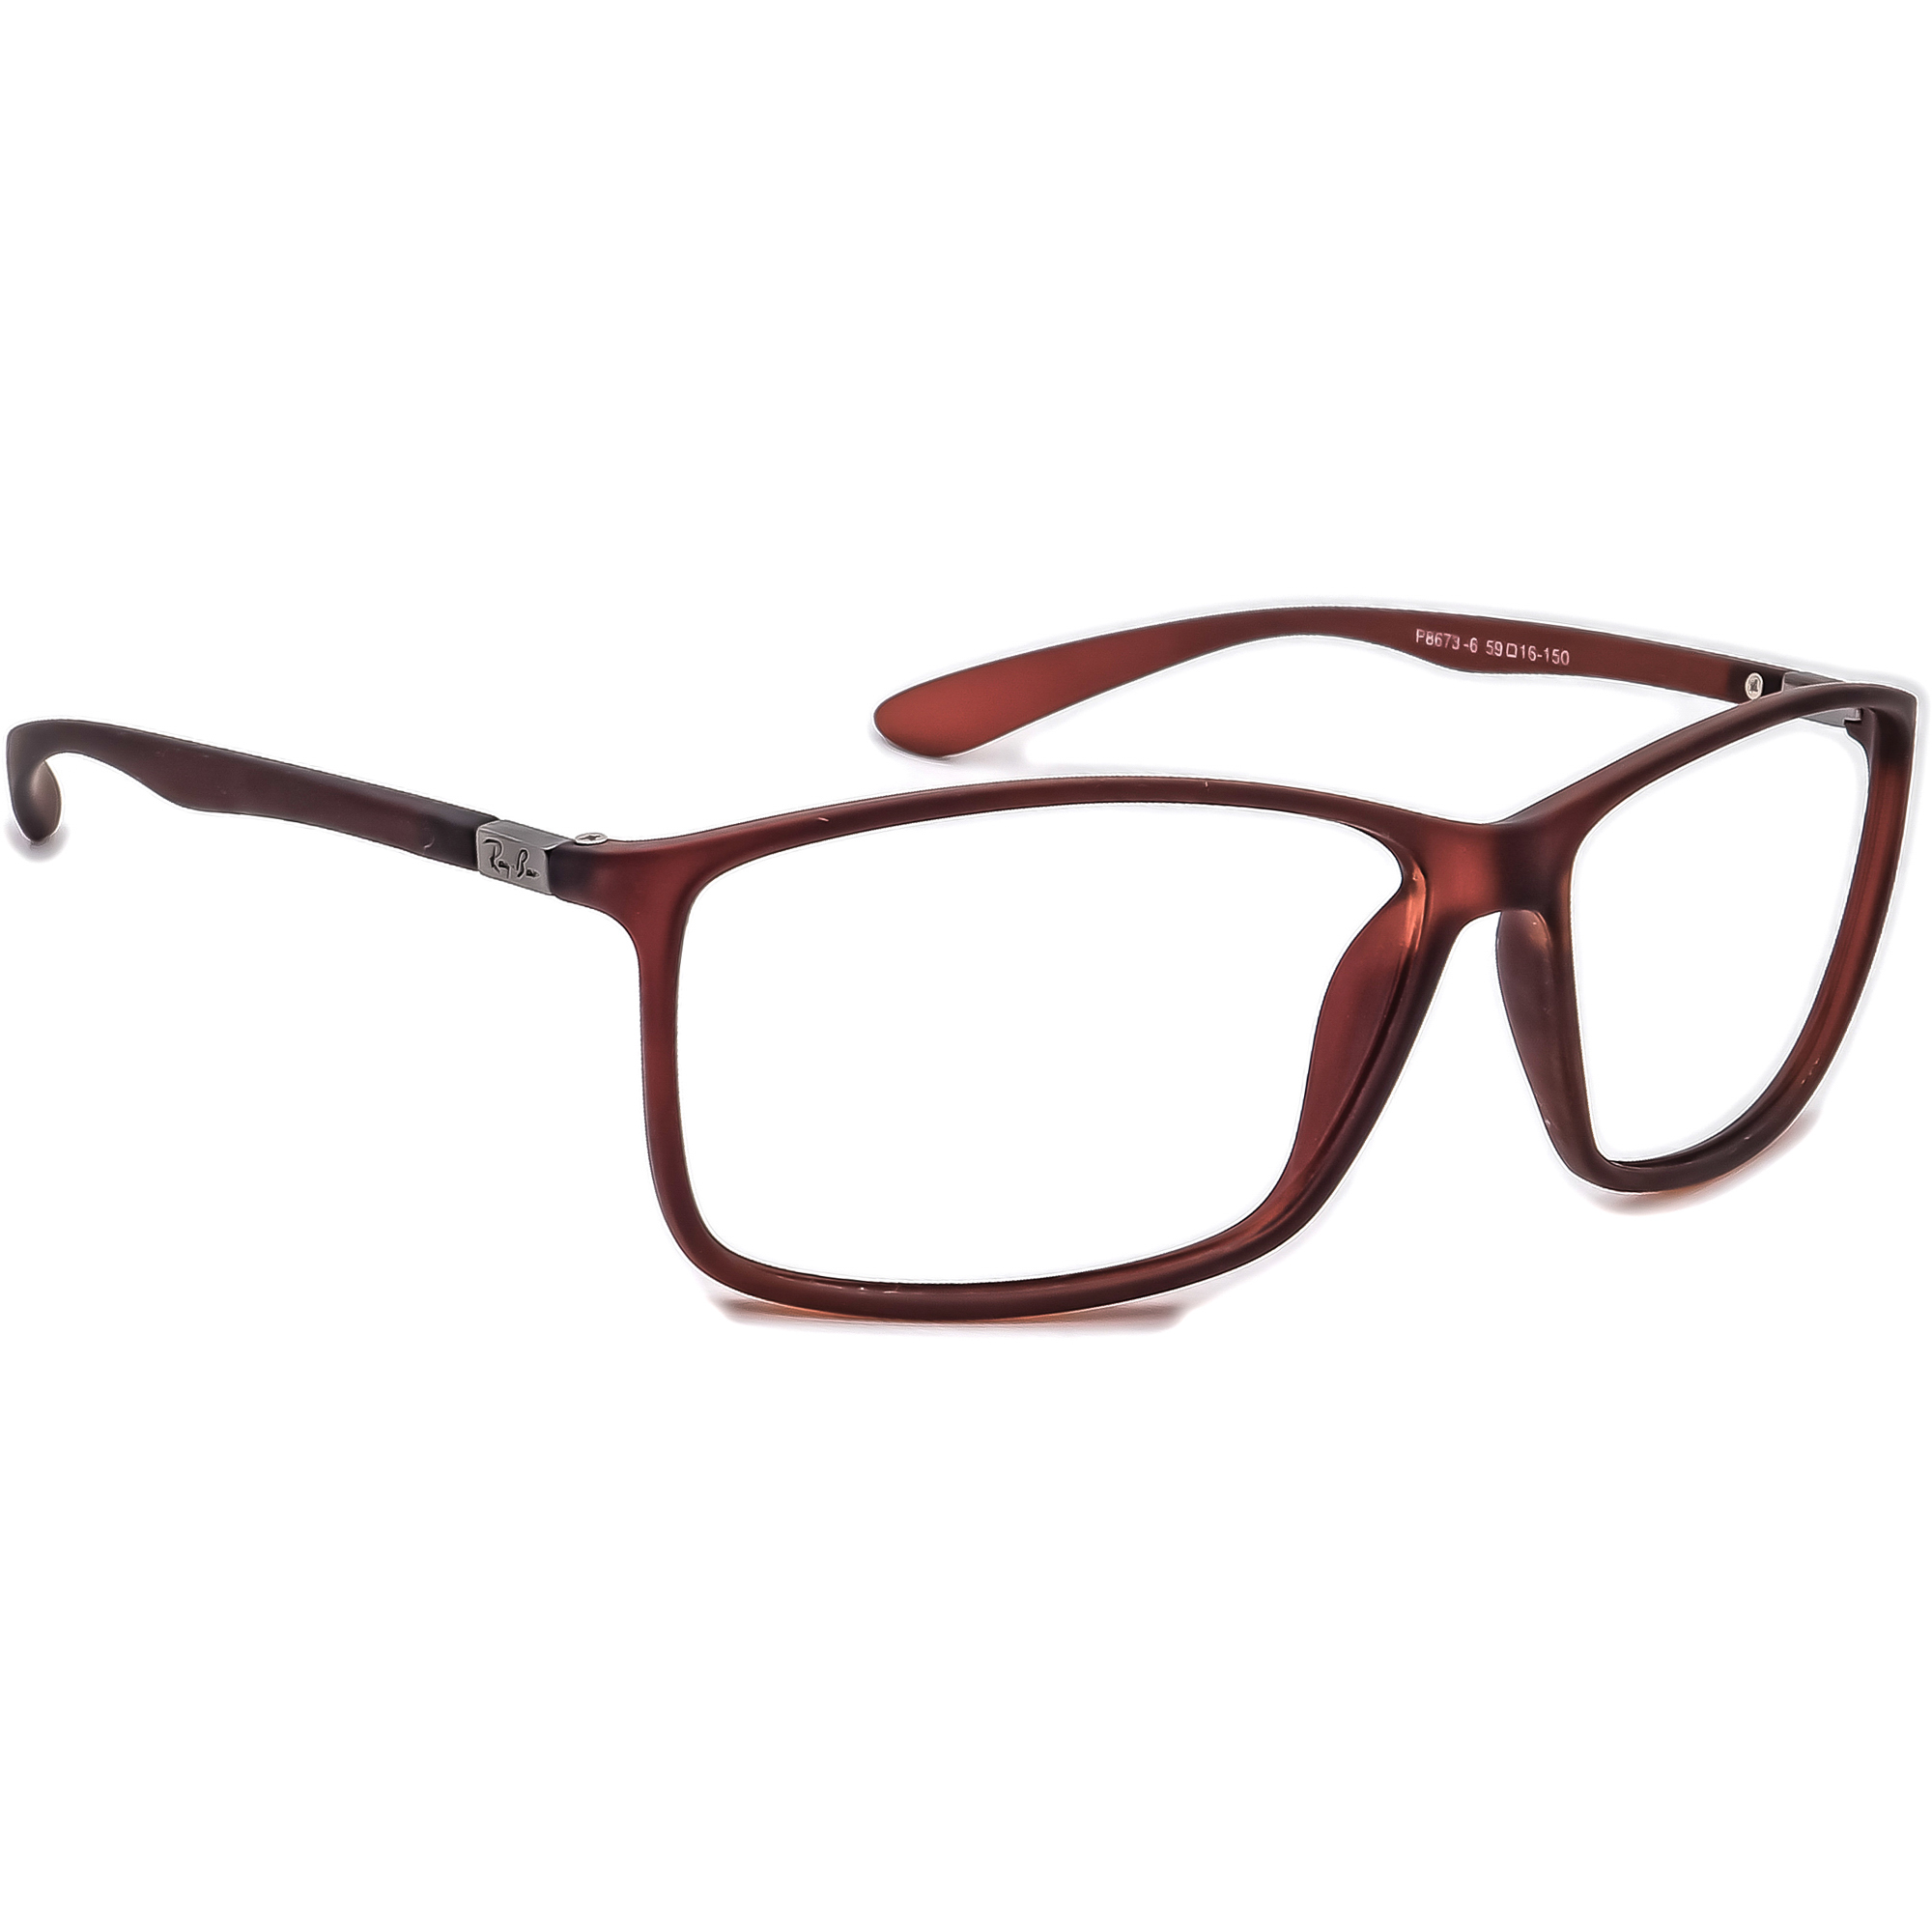 Ray-Ban P8673-6 Sunglasses Frame Only